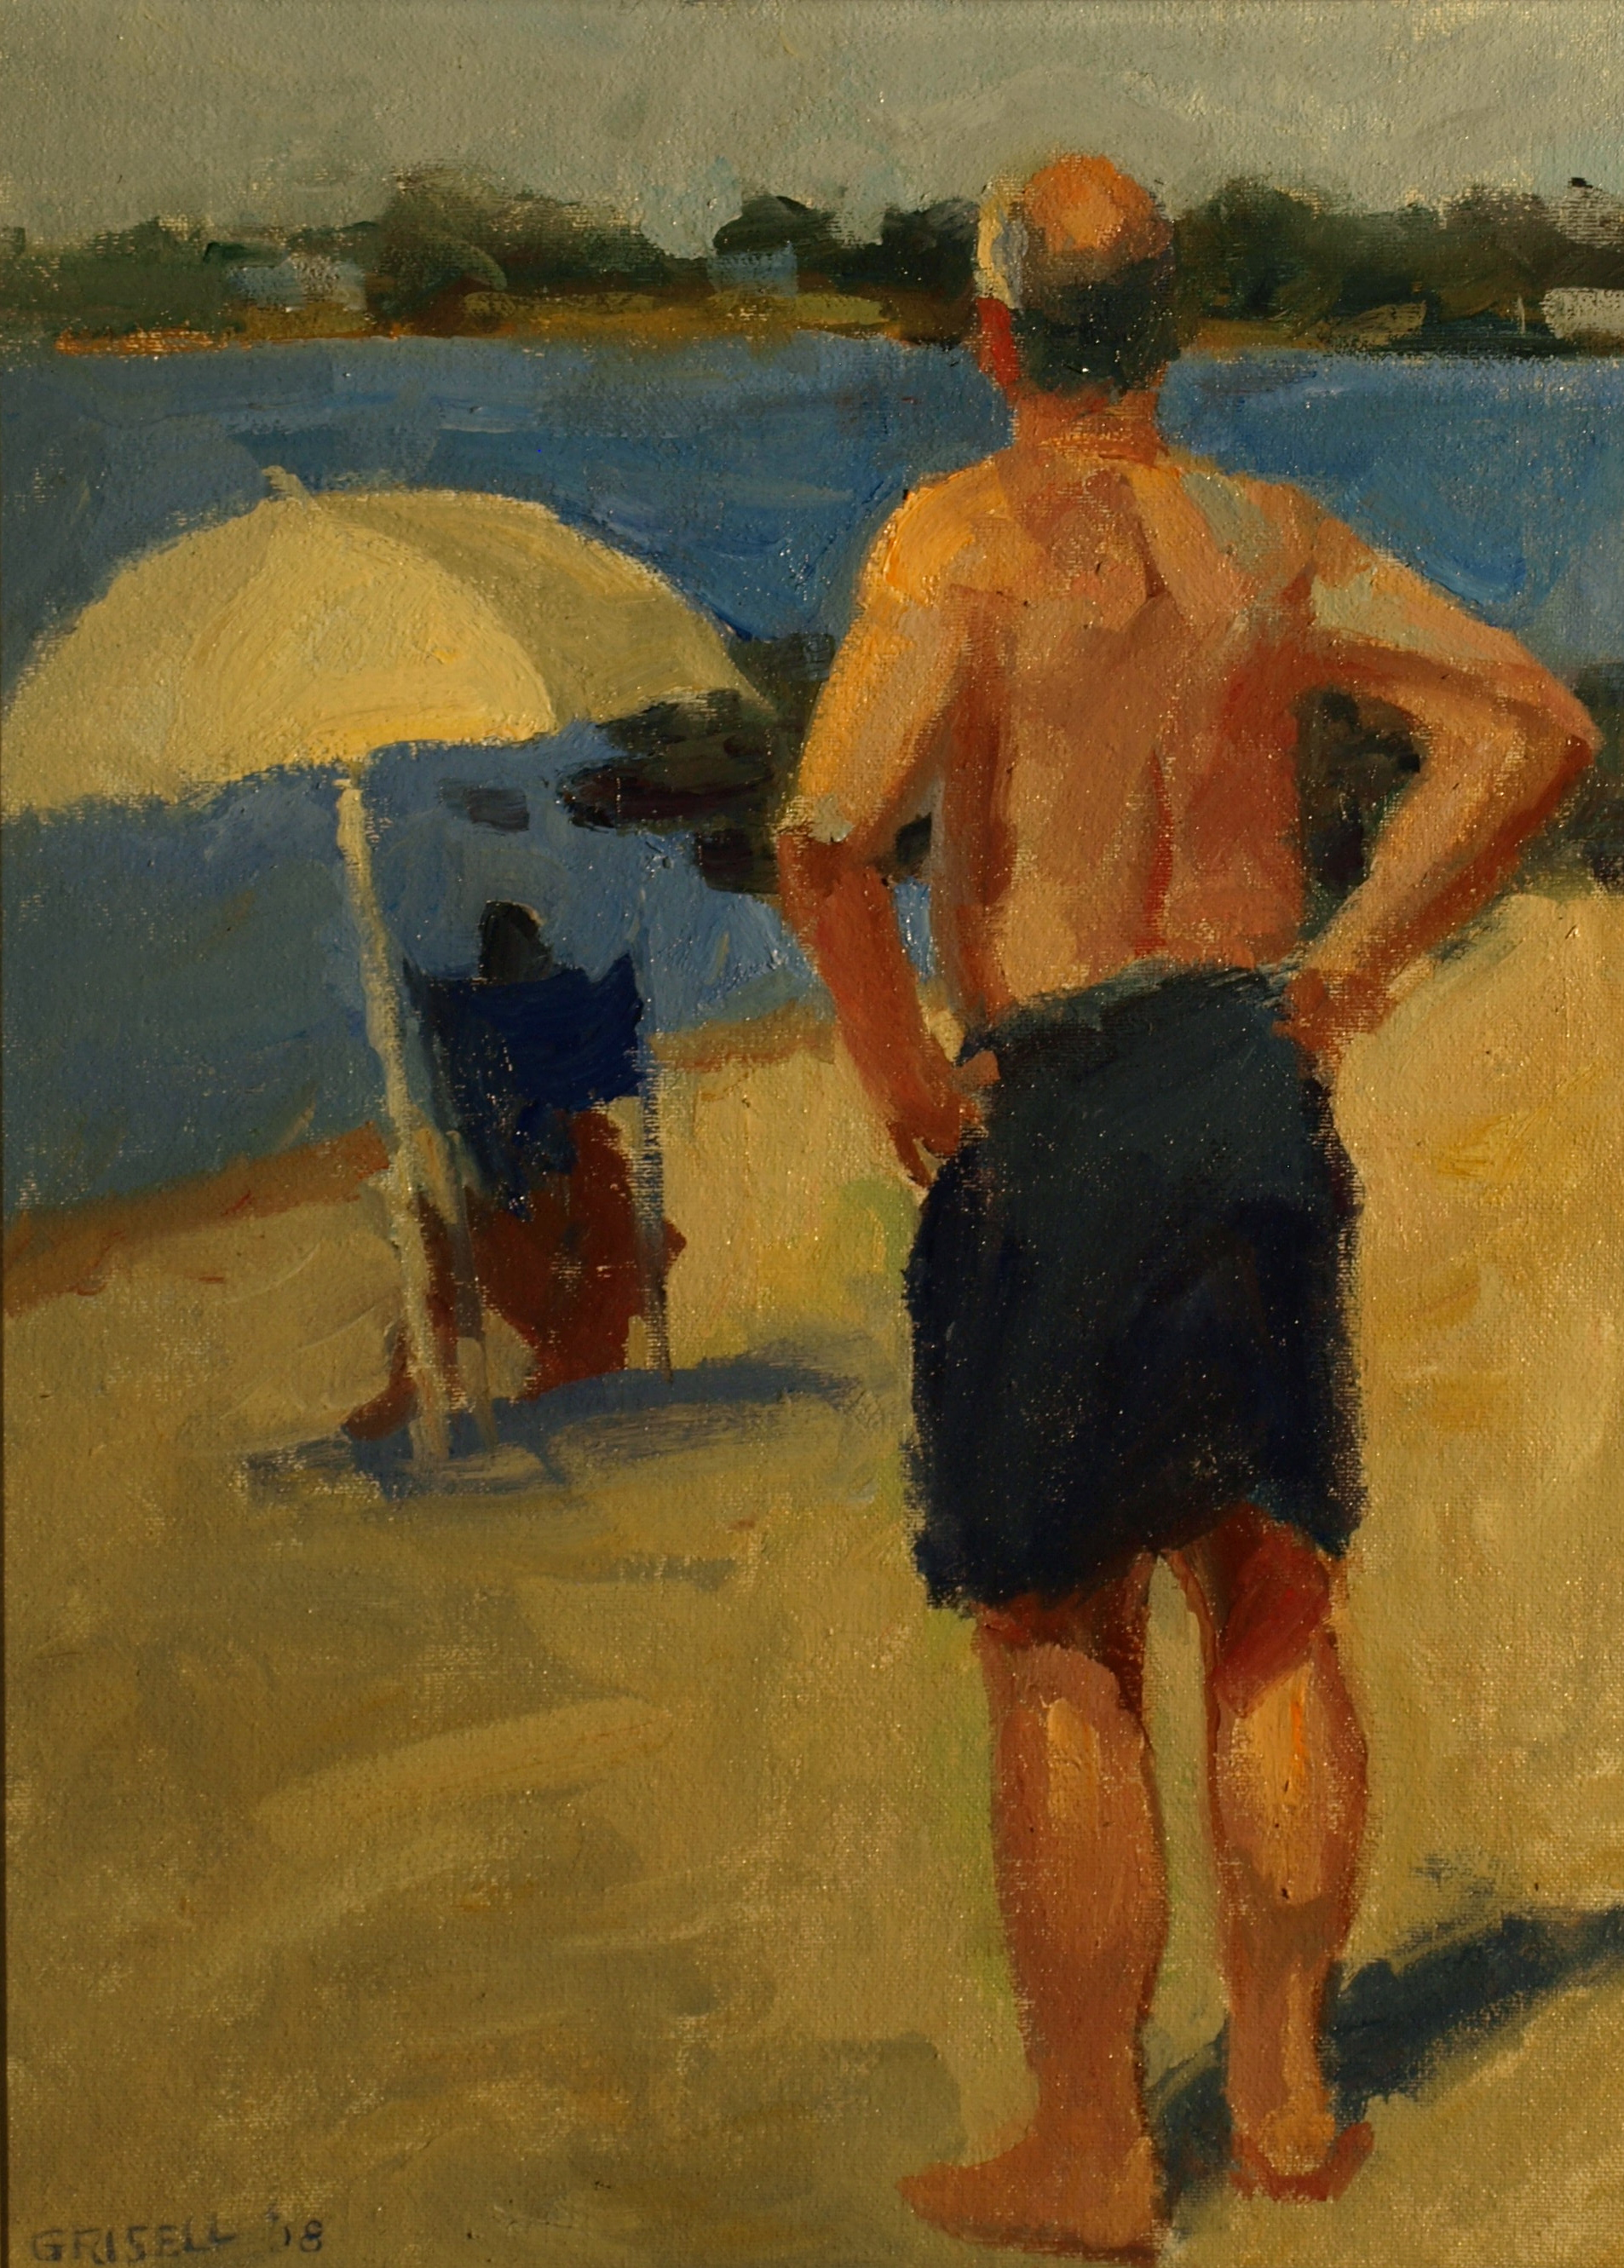 Beach Day, Oil on Canvas on Panel, 16 x 12 Inches, by Susan Grisell, $300